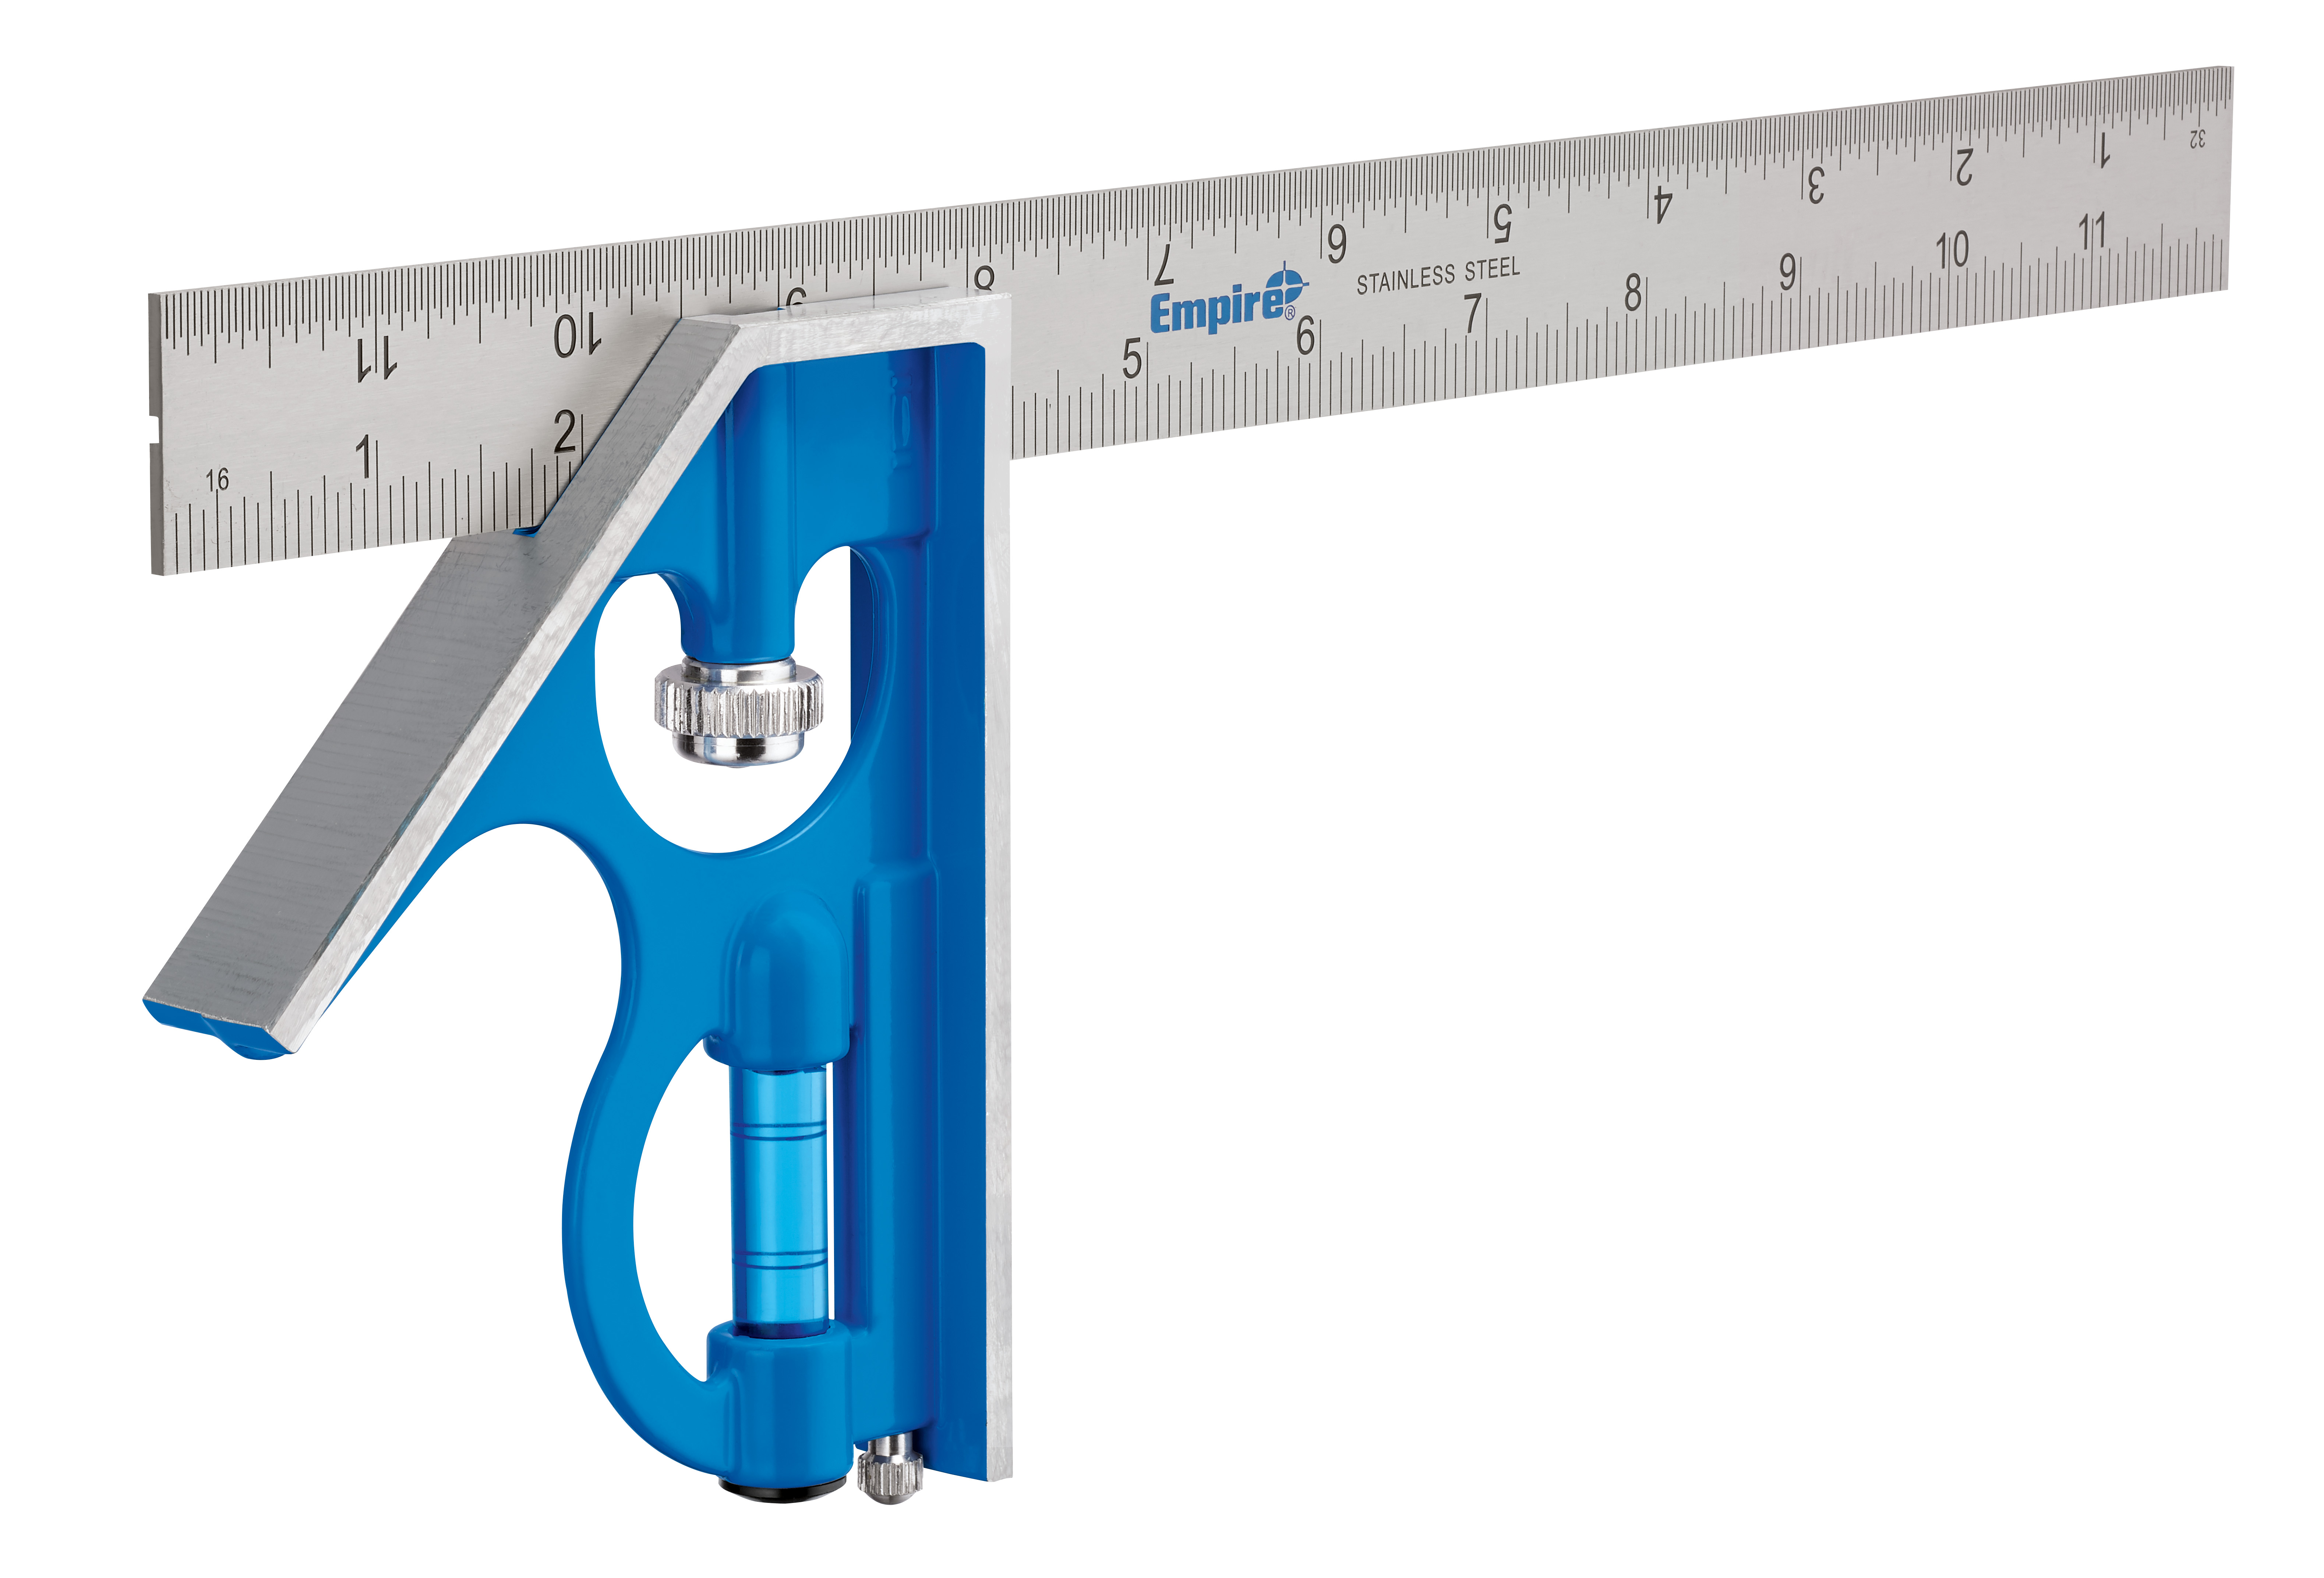 Milwaukee® Empire® TRUE BLUE® E250 Fast Adjustment Professional Combination Square, 12 in W x 3/4 in D x 5 in H, 1/32 in Graduation, 45 deg, Stainless Steel